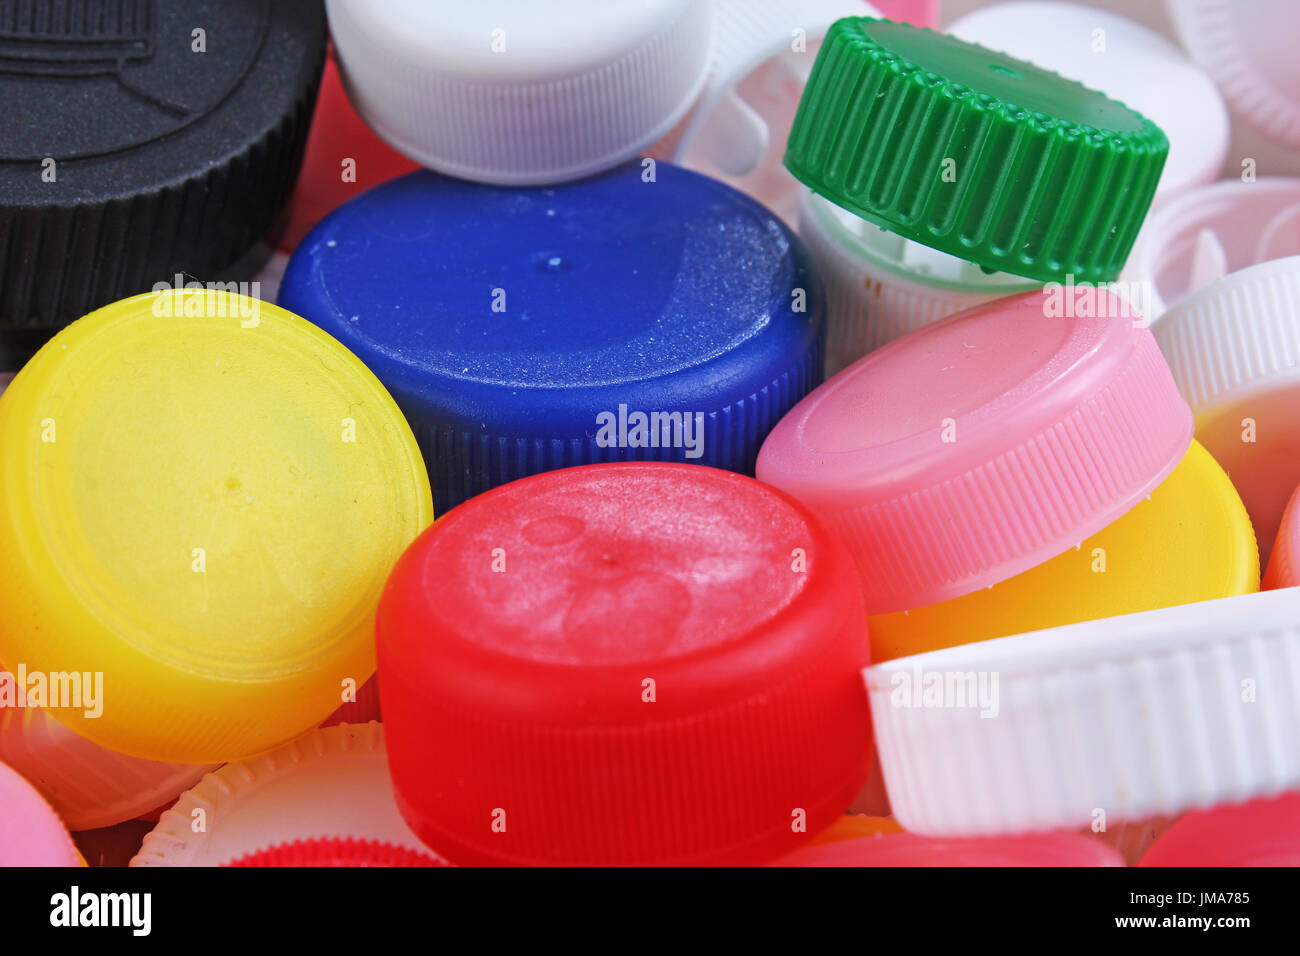 Collect plastic bottle caps.  Close-up shot of stack of recyclable plastic bottle caps on white background. Bottle cap texture pattern as background. - Stock Image